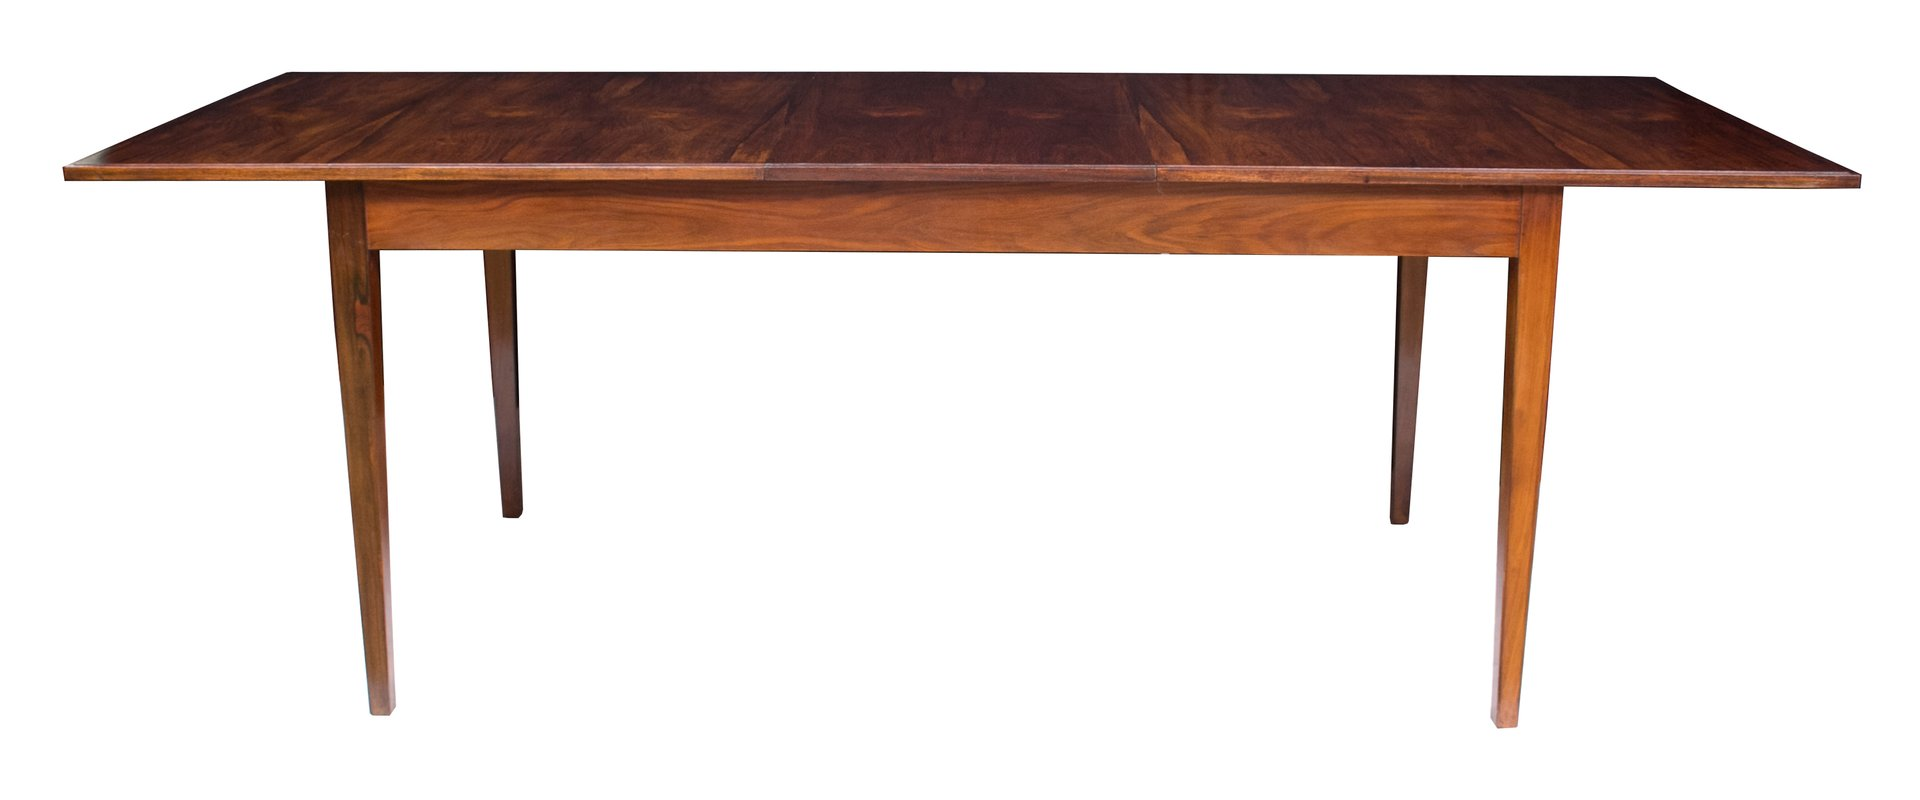 Rosewood Dining Table by Robert Heritage for Archie Shine, 1960s ...